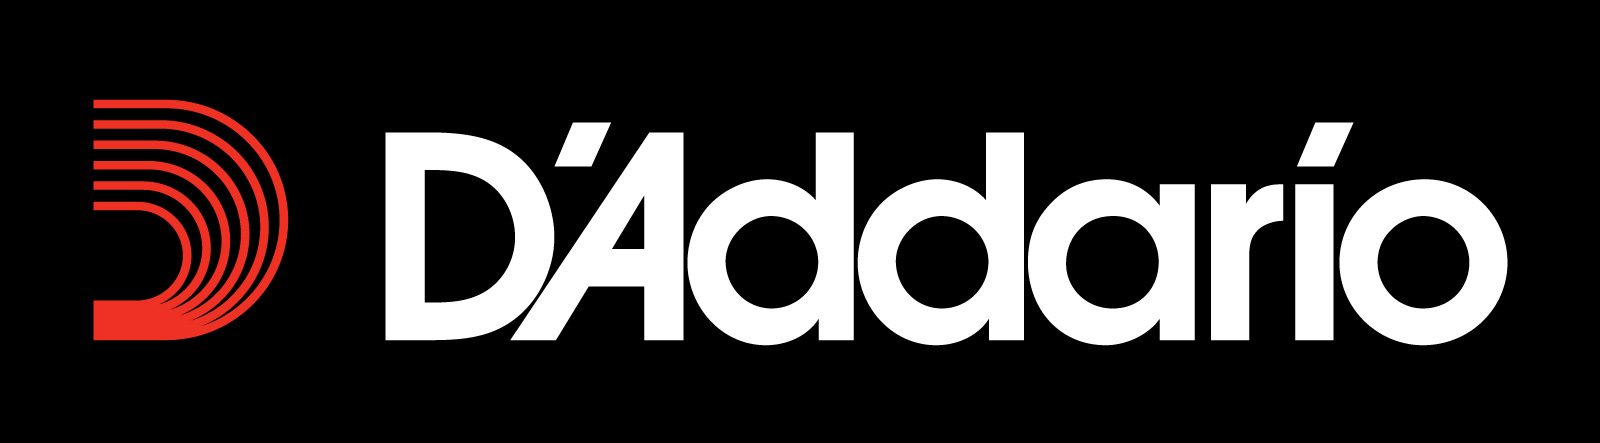 logo_daddario_4color_on_black.jpg